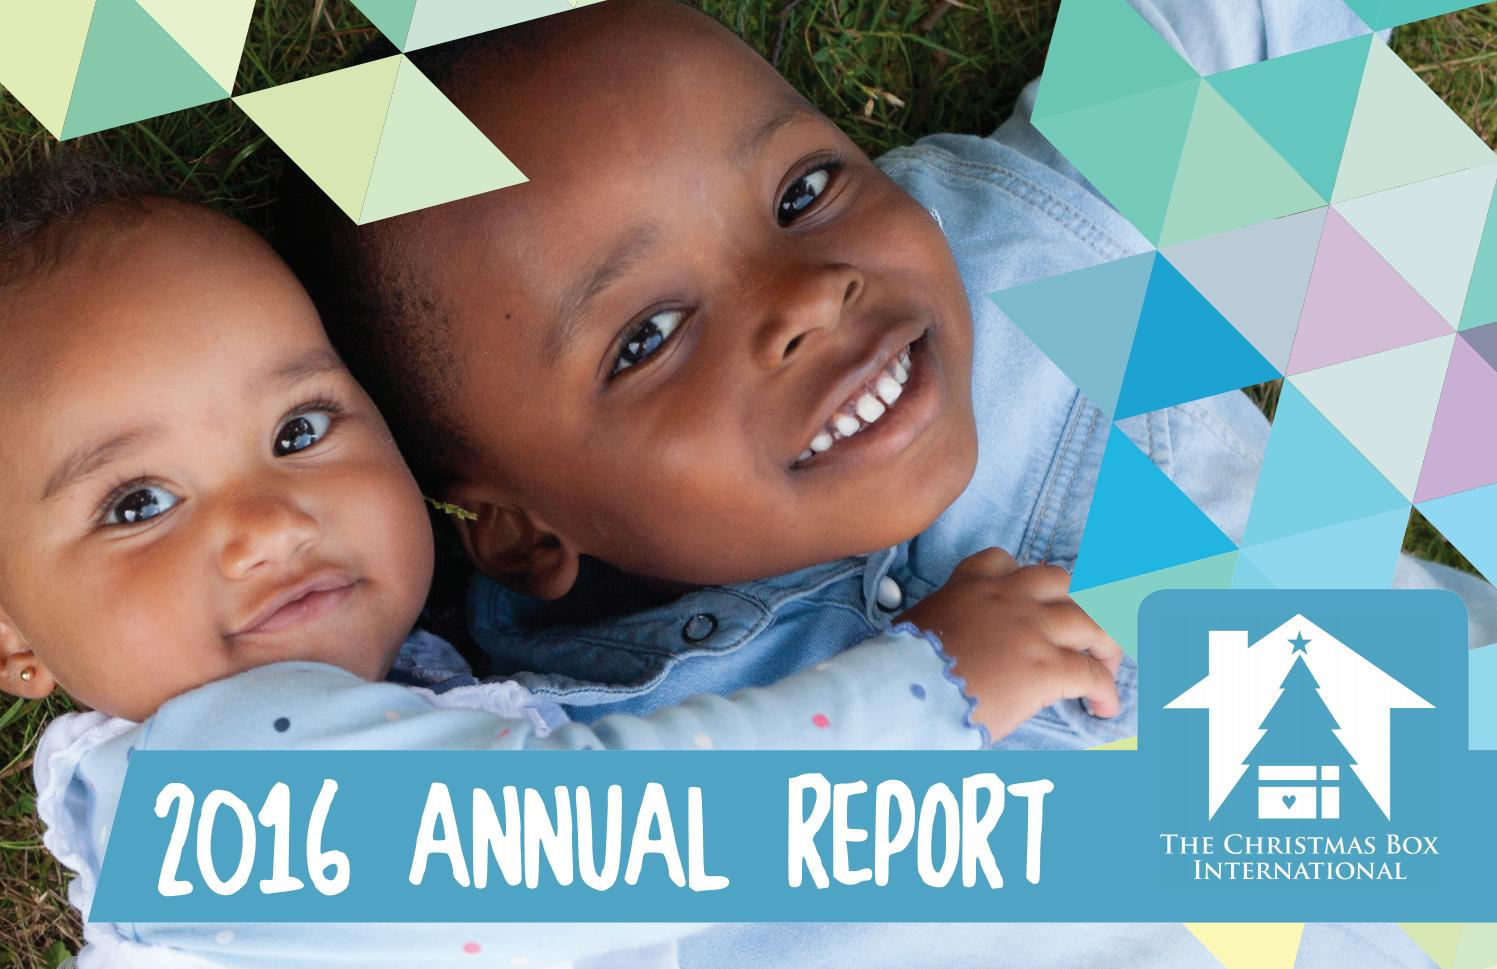 2016 Annual Report by The Christmas Box International - Issuu